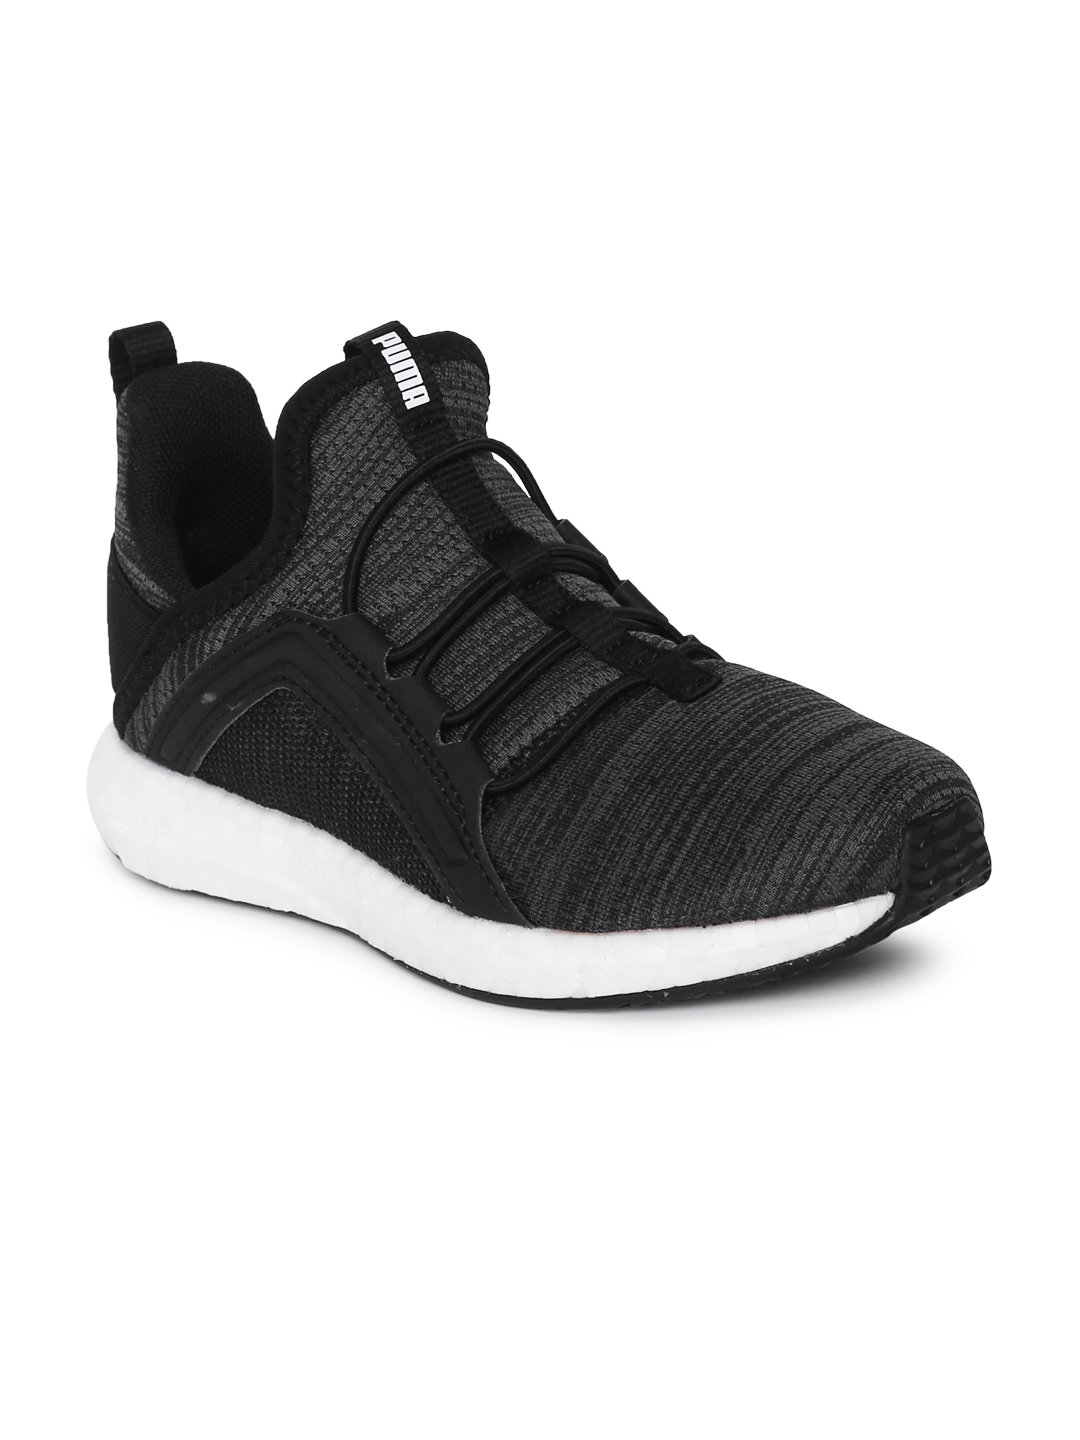 3ef3d0f5602 Puma Kids Grey   Black Textured Mega NRGY Heather Knit AC PS Training Shoes